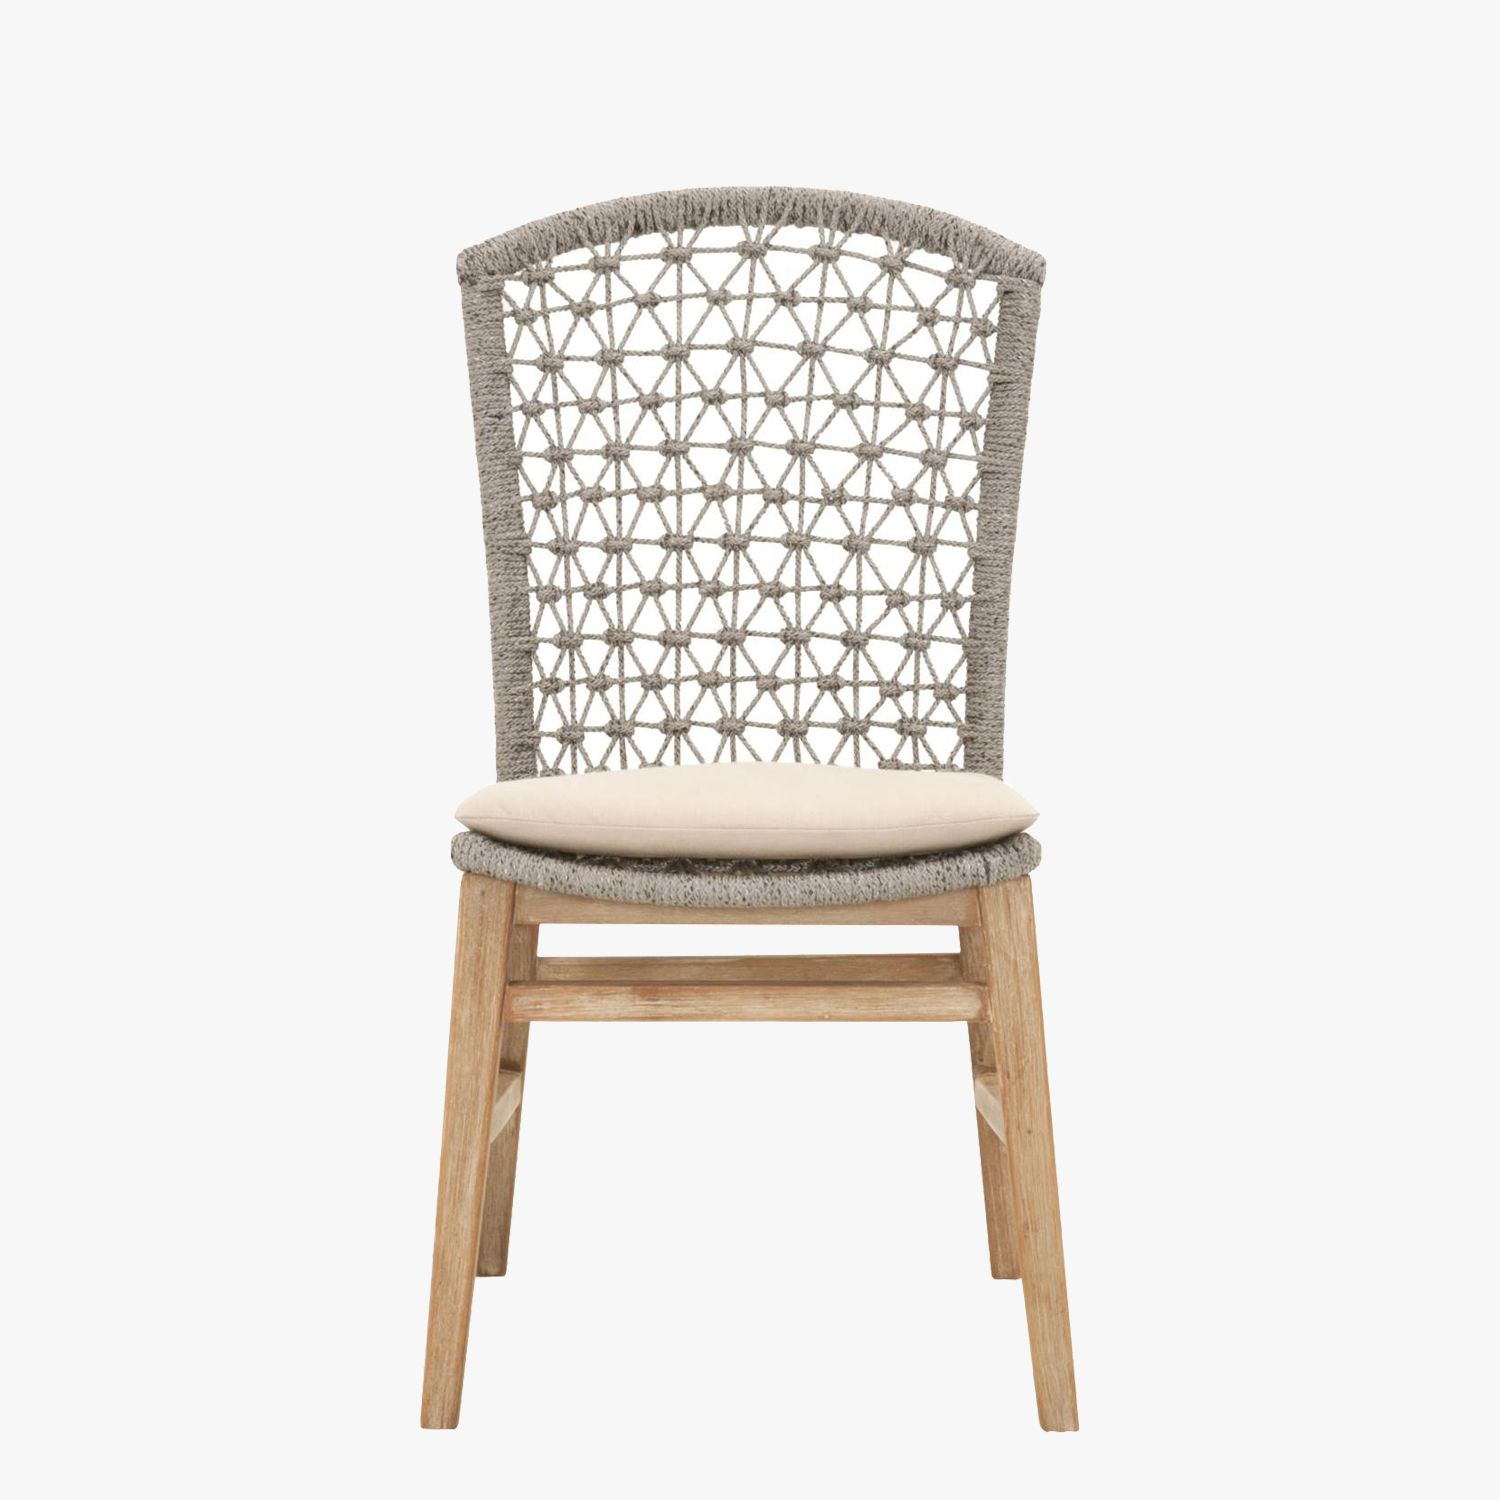 Set of Two Addie Platinum Dining Chairs | Dining chairs, Dining sets ...